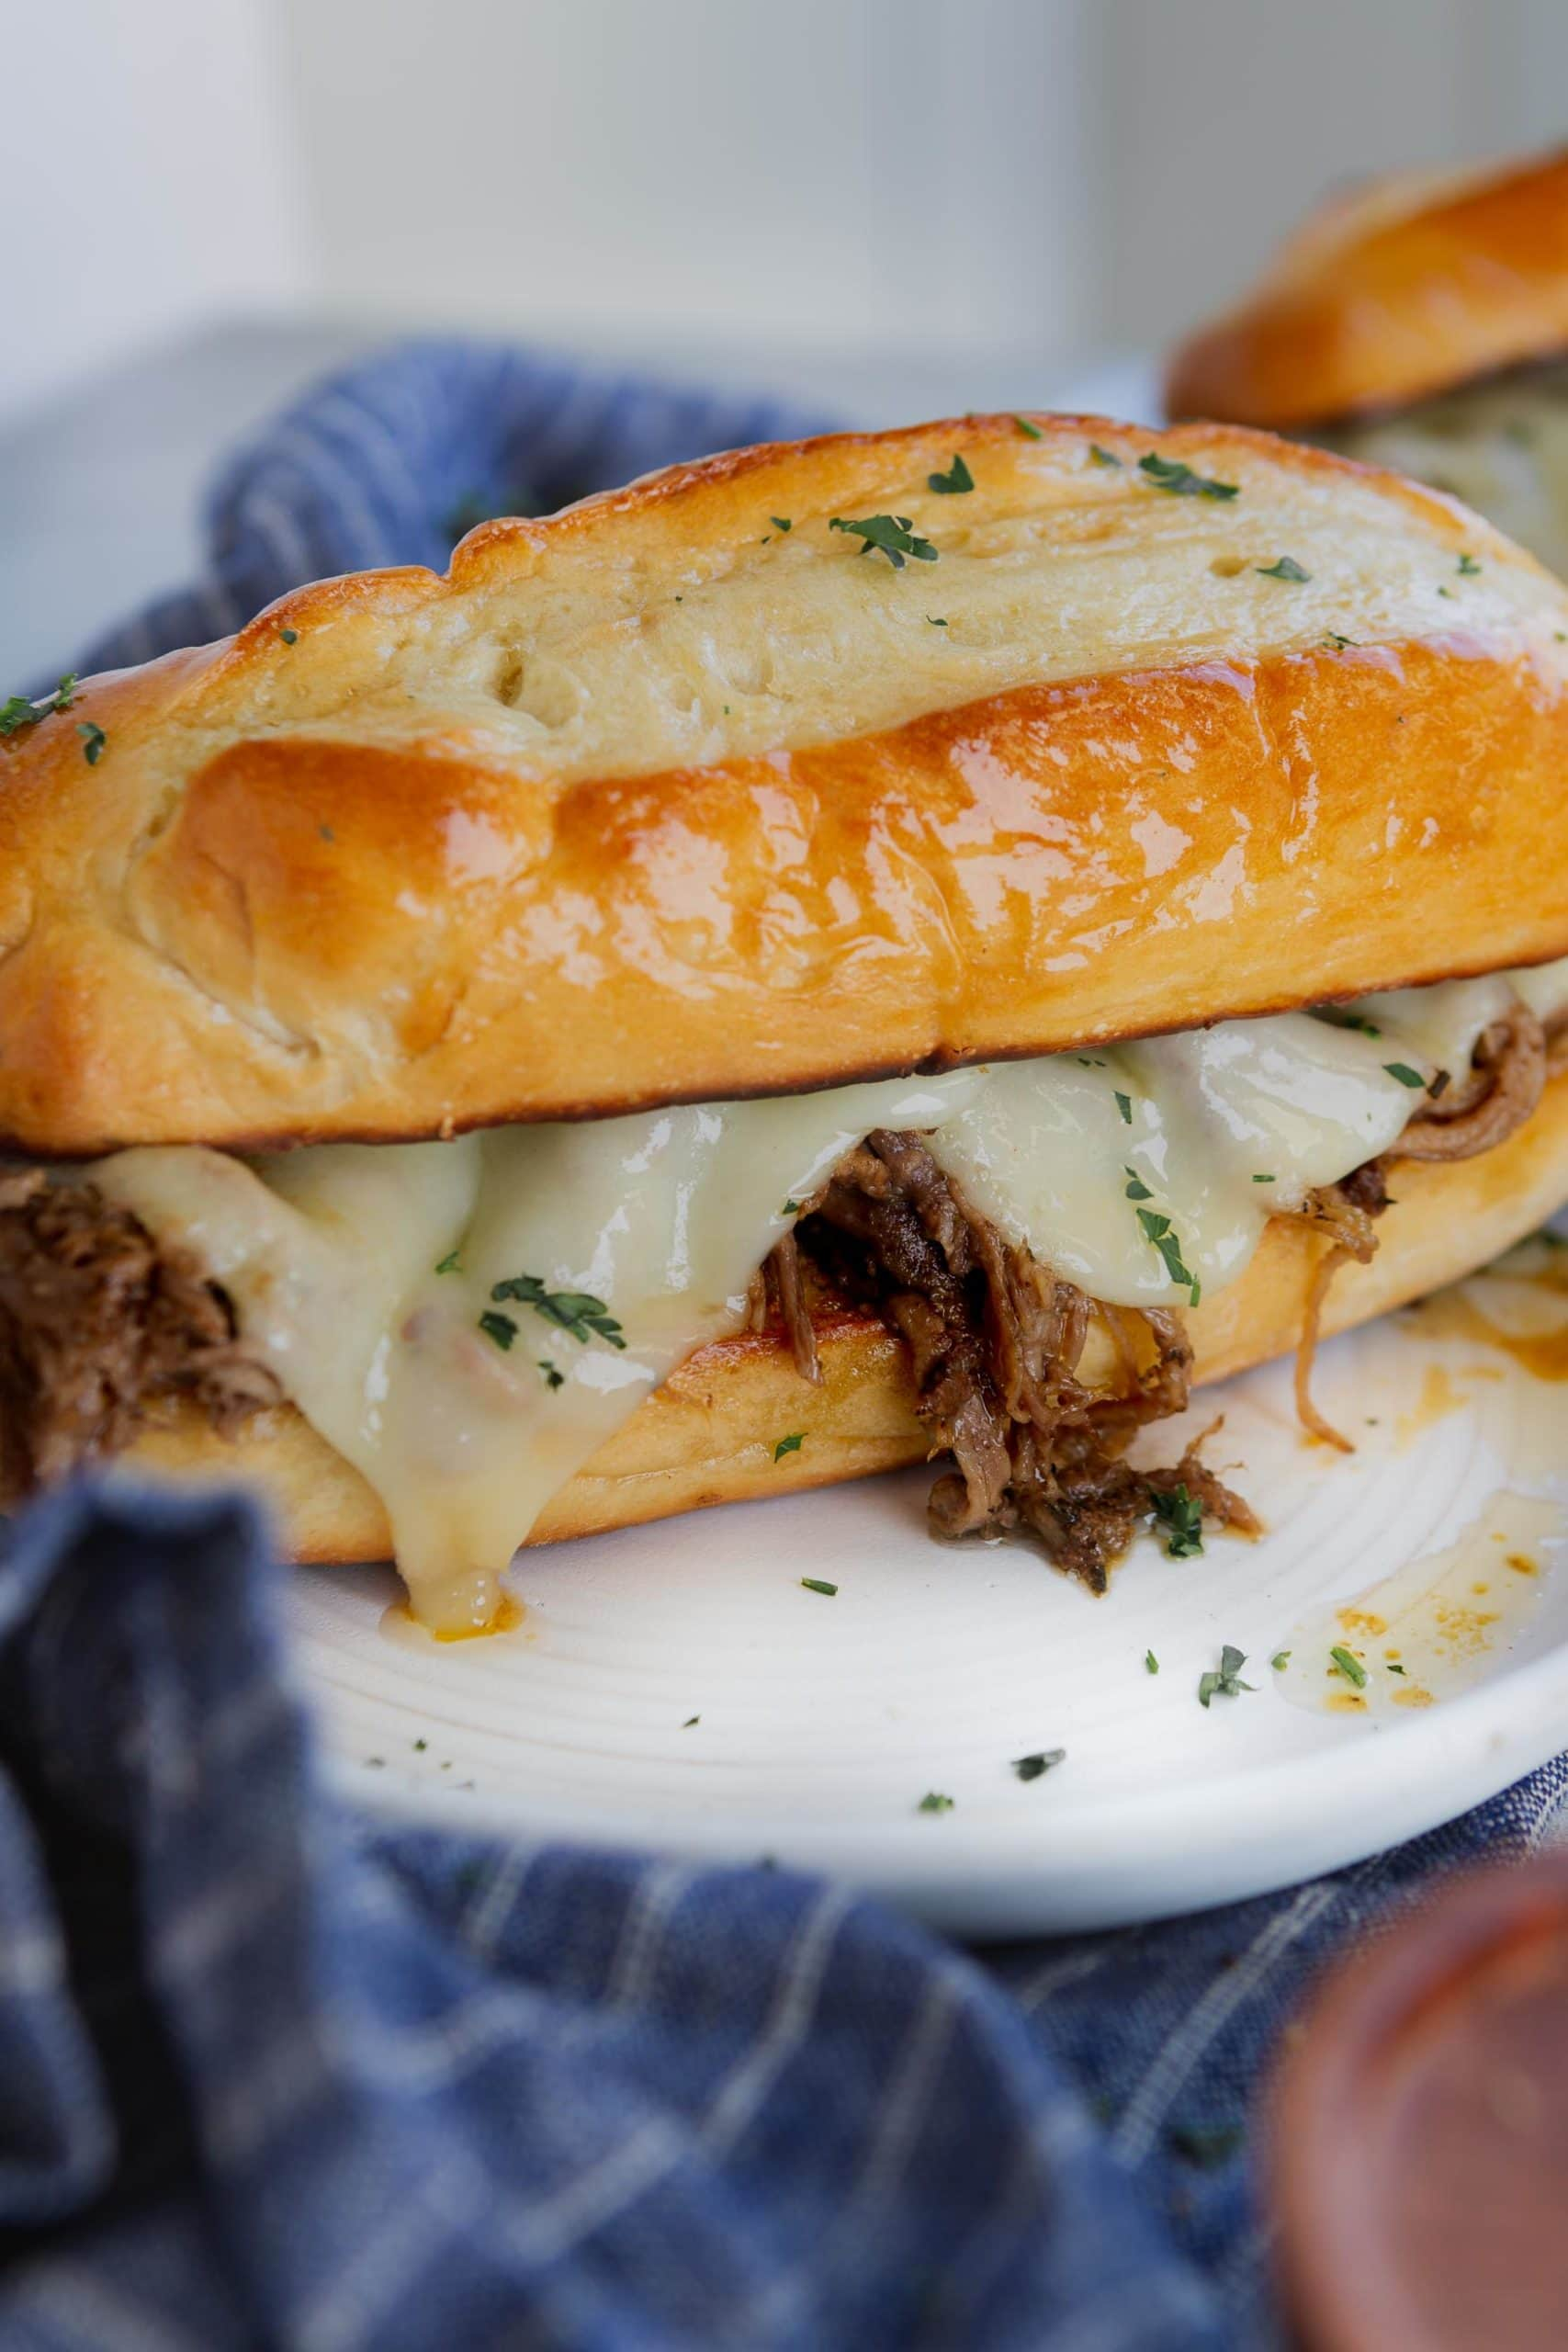 A French dip sandwich. The sandwich is on a hoagie roll and there is beef and melted cheese. The sandwich is on a plate and a blue and white napkin is under the plate.